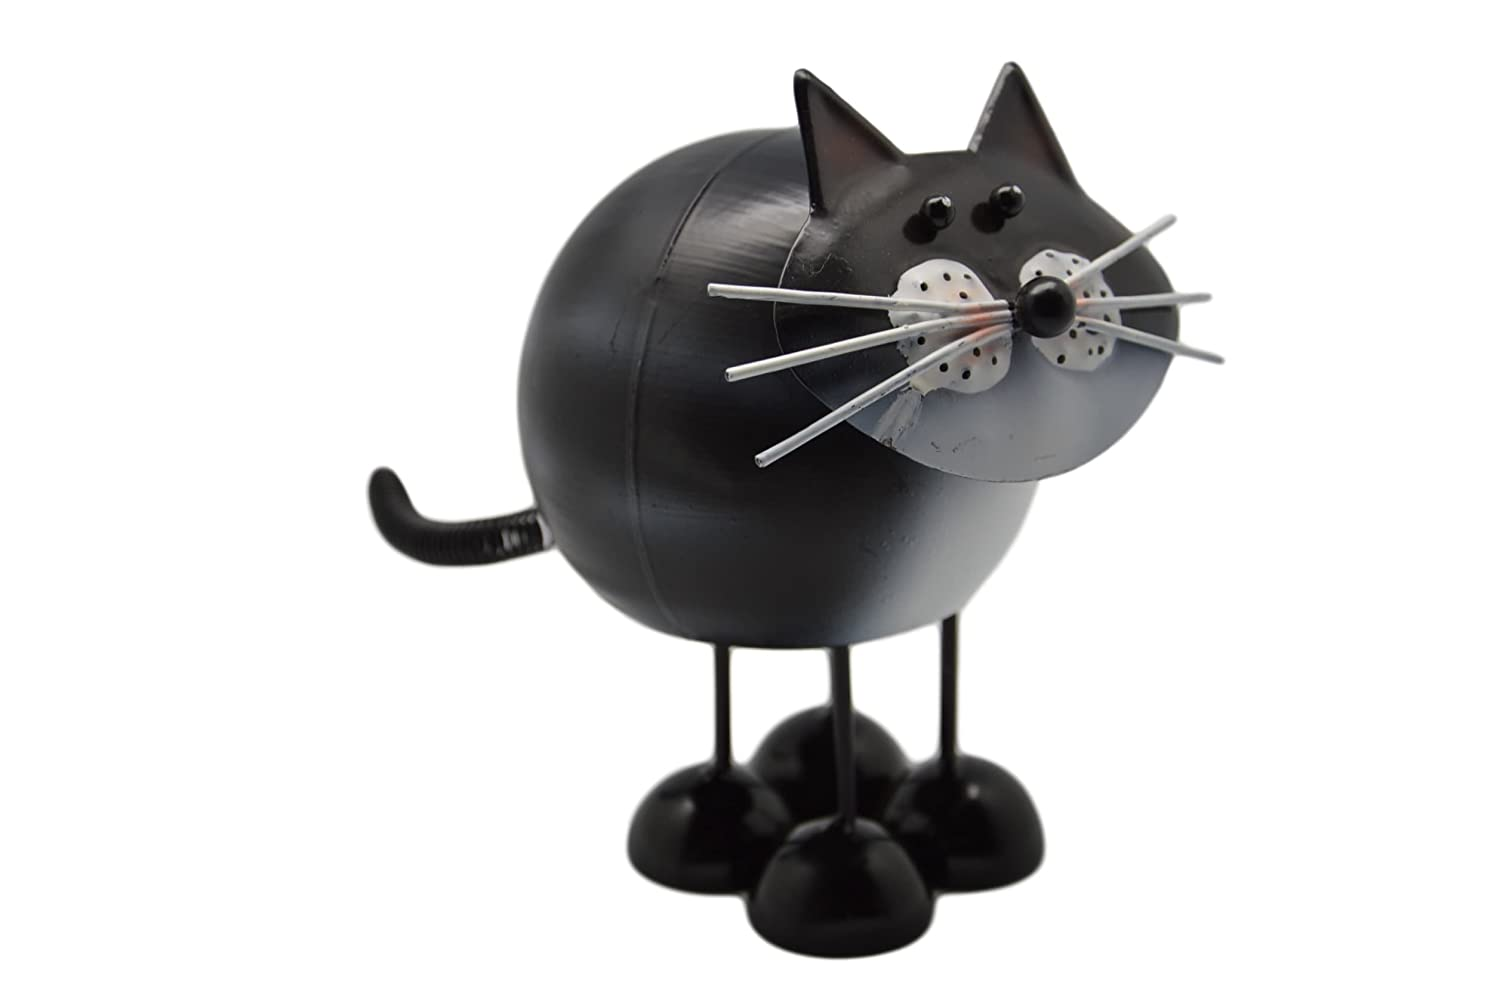 Metal Cat Ornament Spring Loaded Body Allows This Cute Cat Gift To Just Keep Bobbin Bobbin Friends Black Cat Suitable For Indoor or Outdoor Use